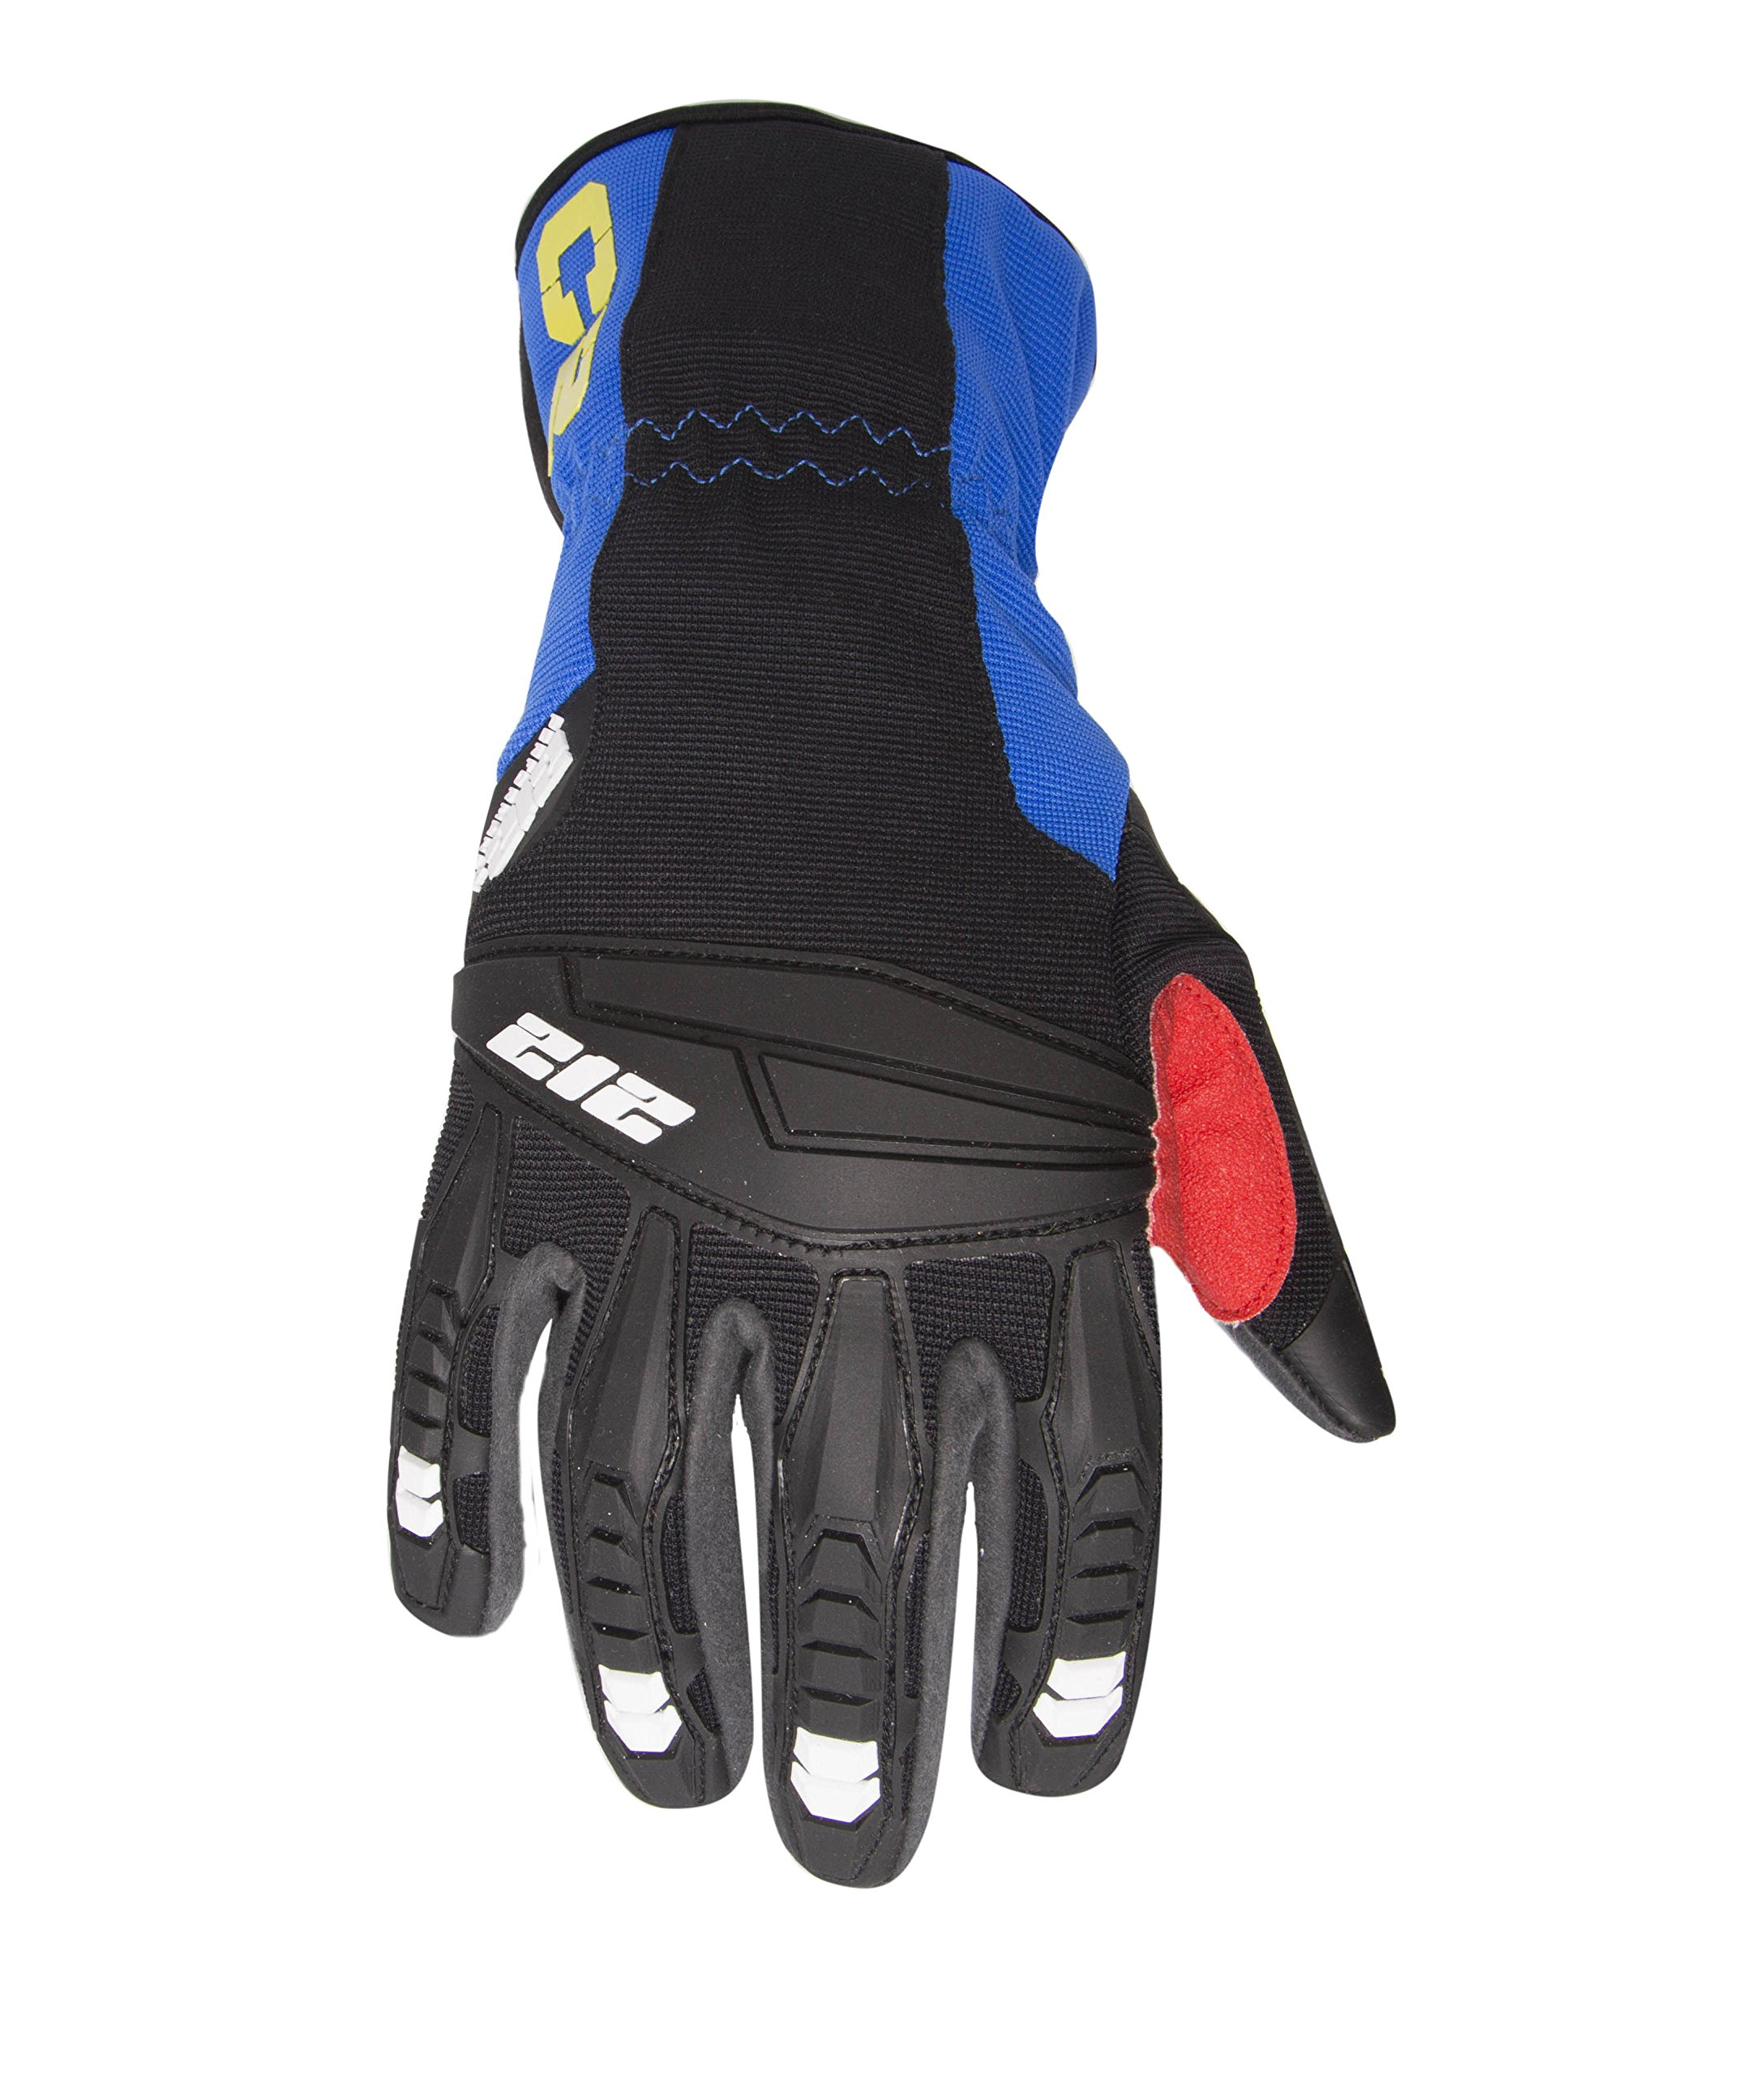 212 Performance Gloves IMPC2W-03-010 Impact Cut Resistant Winter Work Glove (EN Level 2, ANSI A2), Large by 212 Performance Gloves (Image #3)